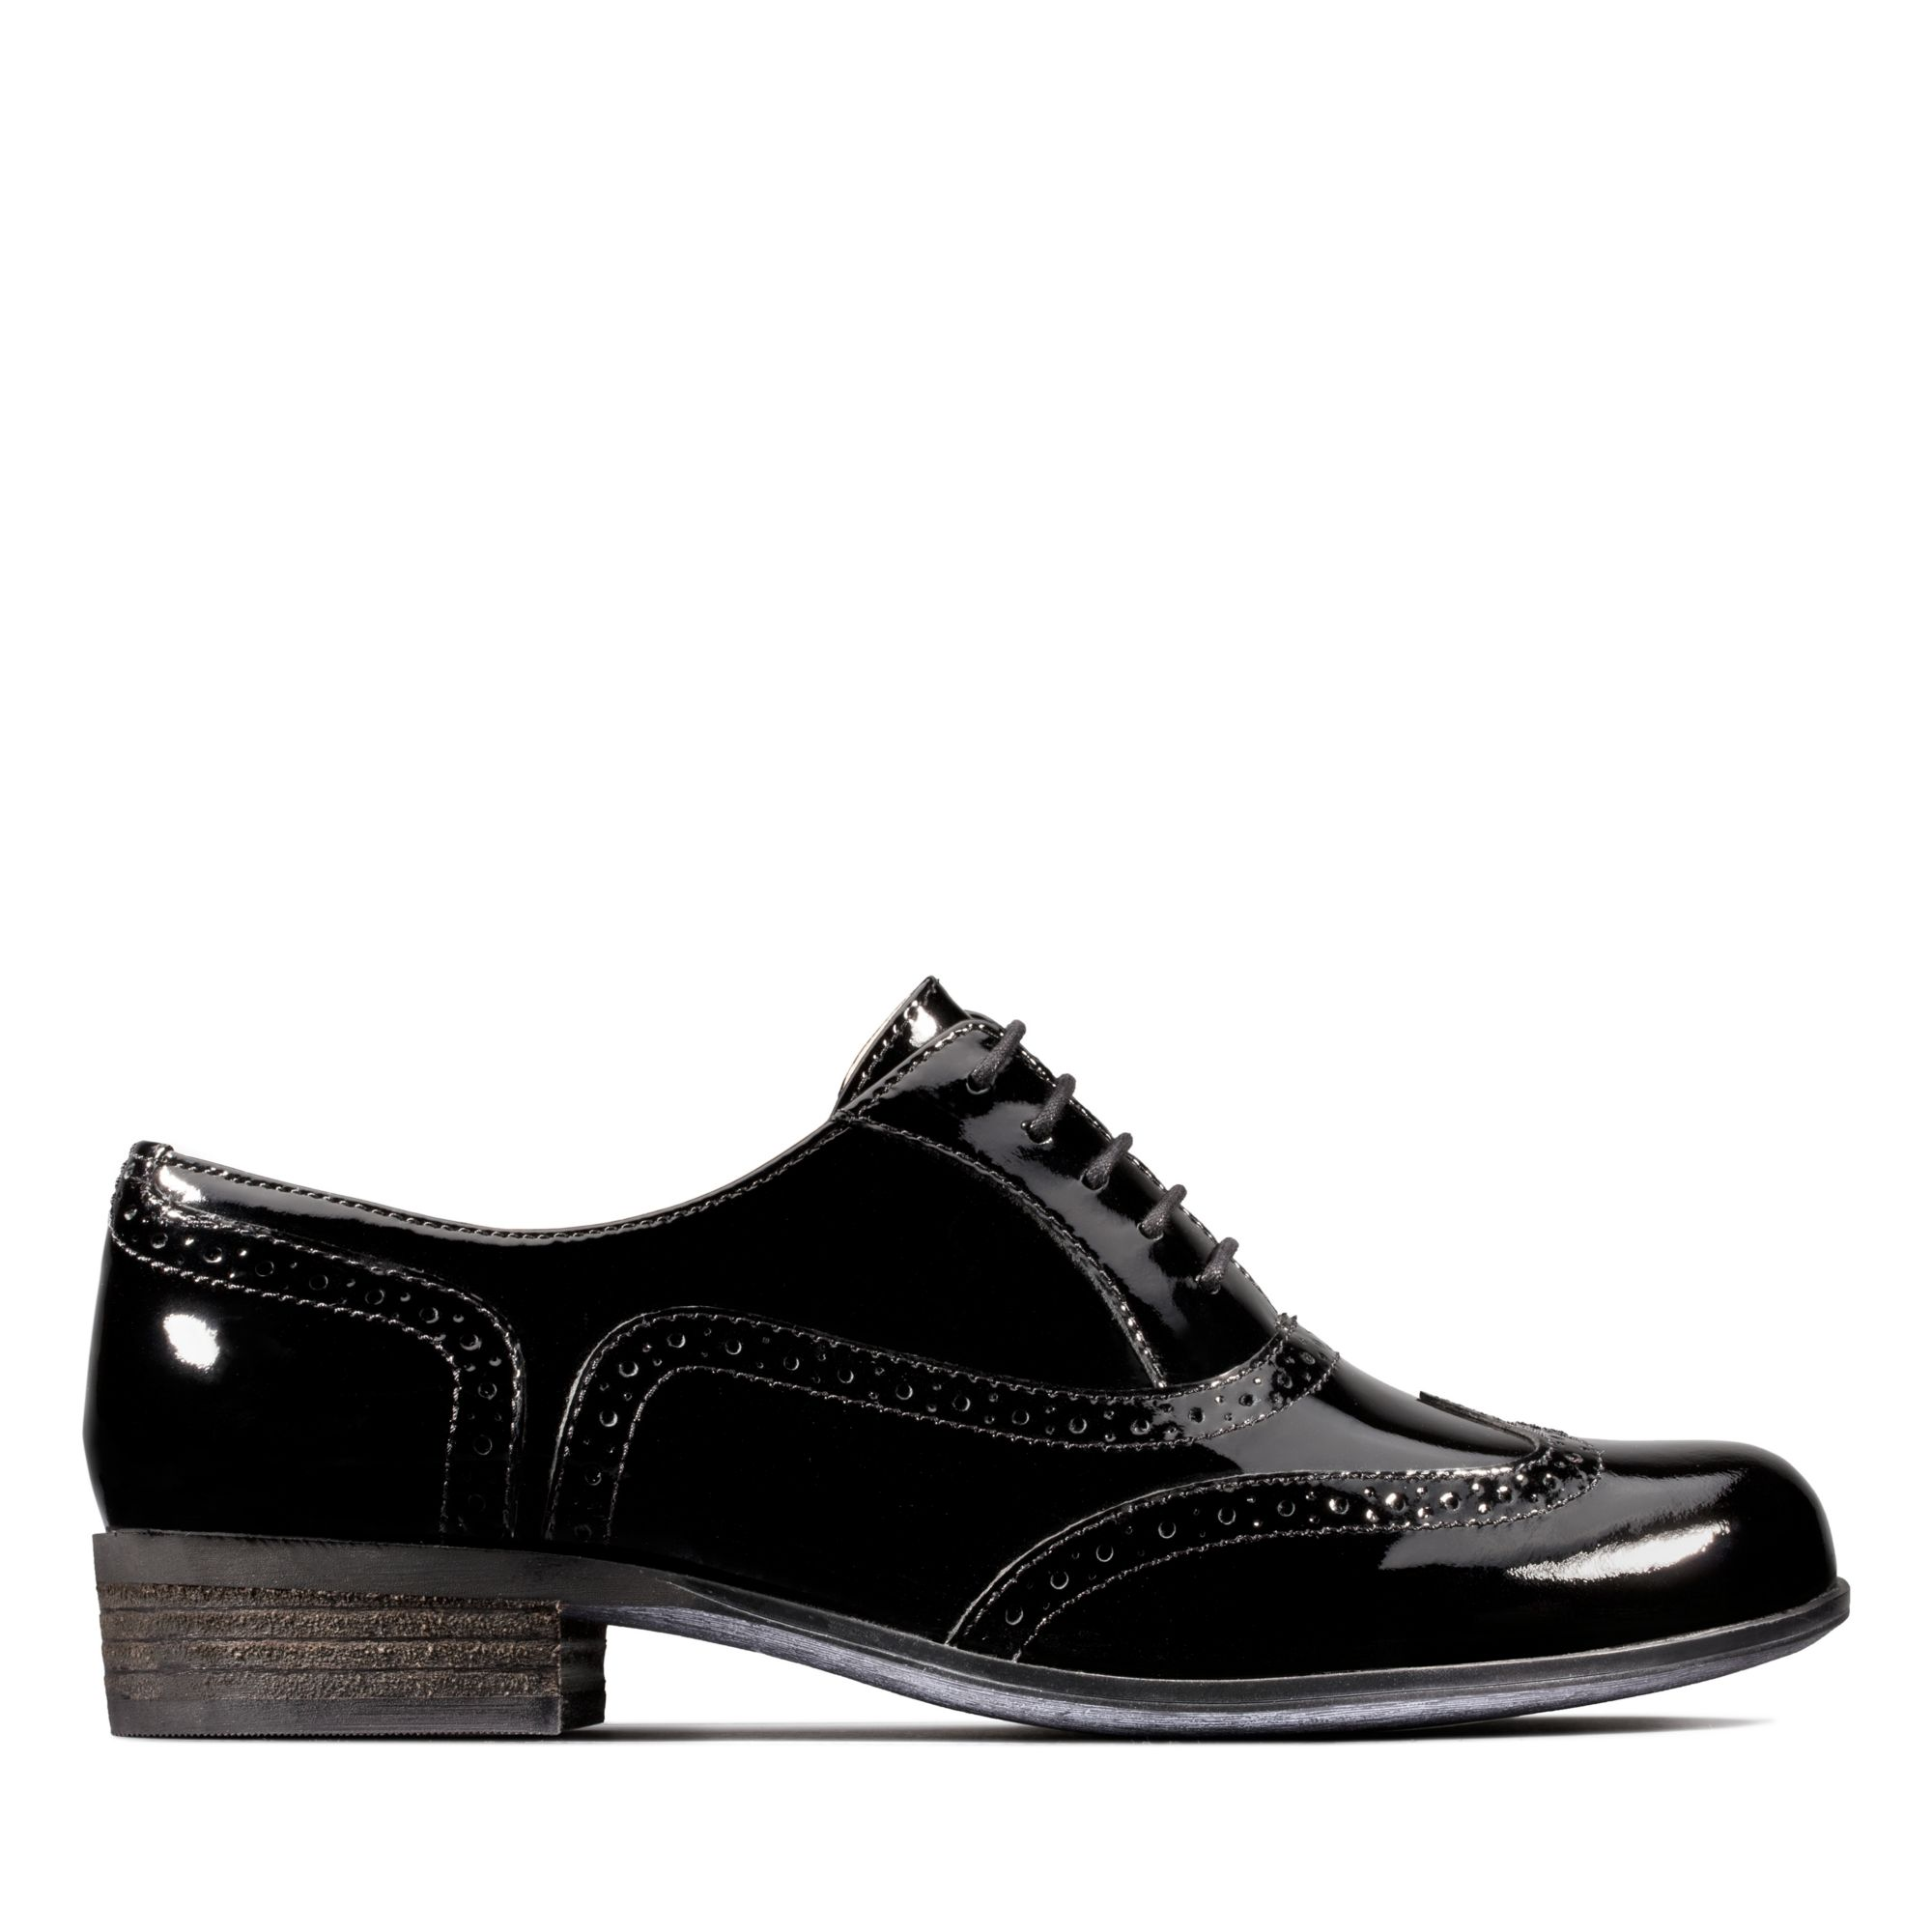 Clarks Wide Fit Black Patent Brogues